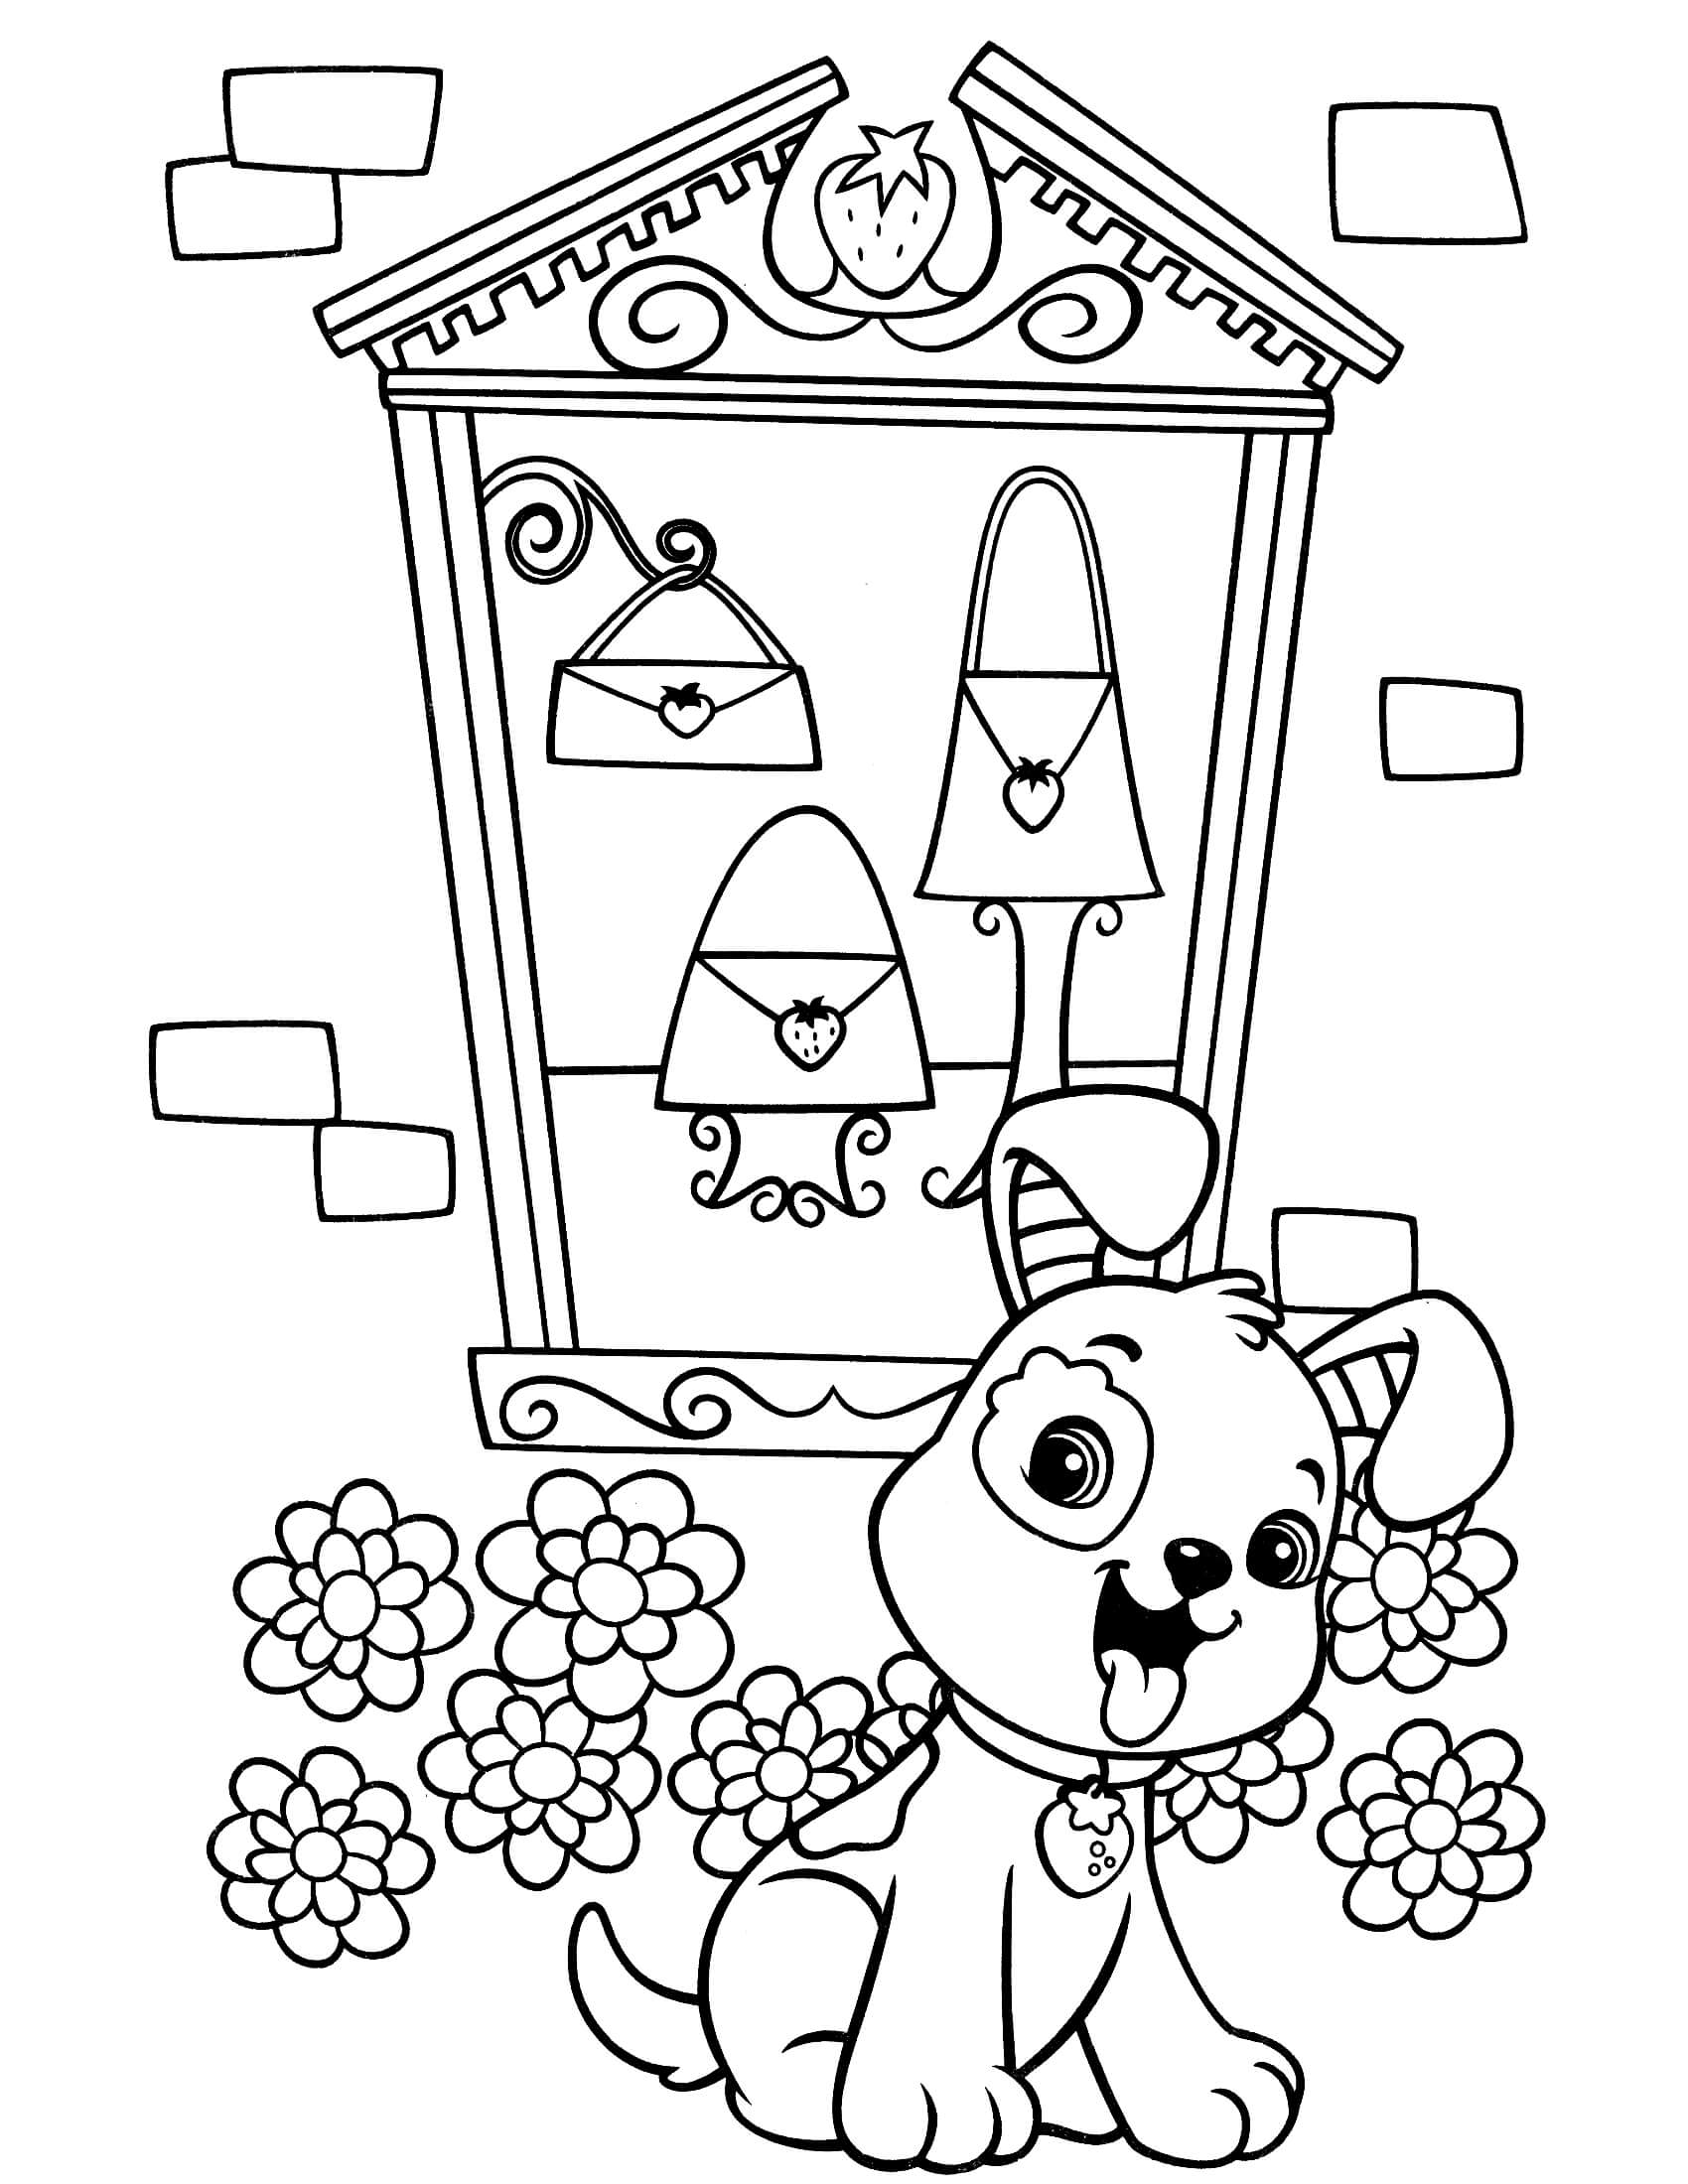 strawberry shortcake pictures to color strawberry shortcake 17 coloringcolorcom strawberry color pictures shortcake to